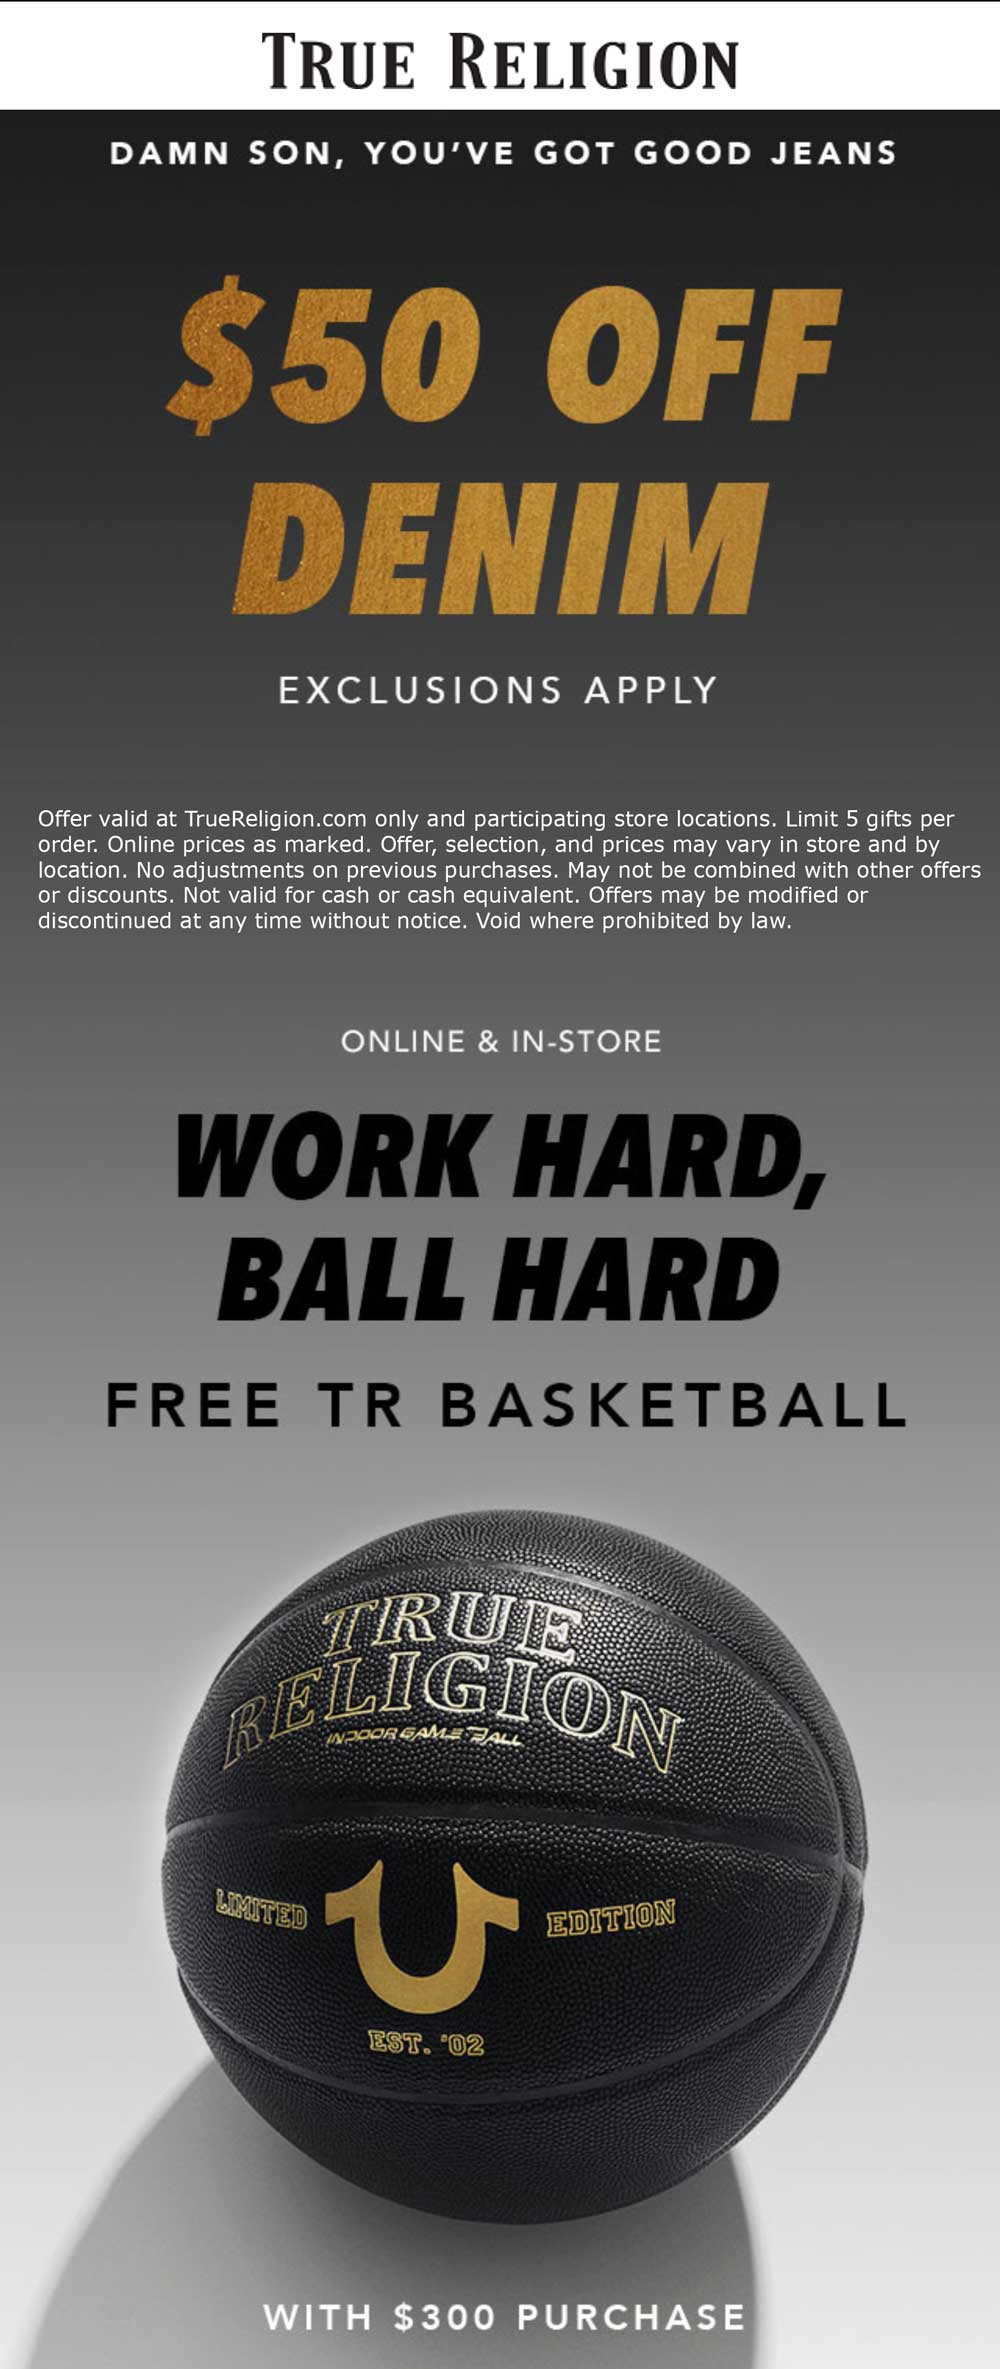 True Religion Coupon April 2019 $50 off jeans + free basketball at True Religion, ditto online